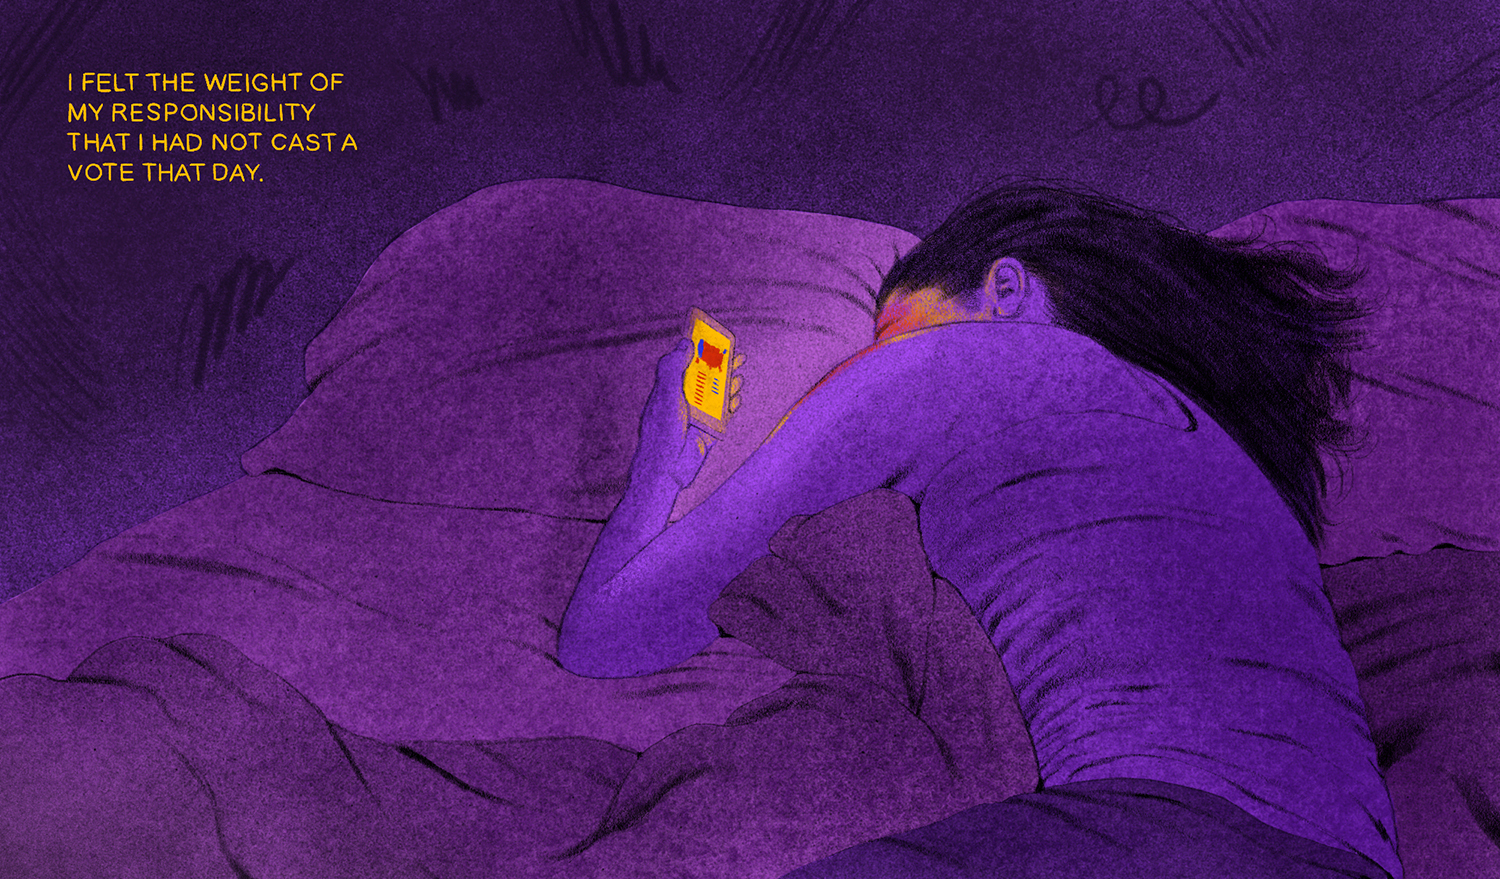 """Illustration of a woman lying on a bed, staring at her phone with a election map. The text on the image reads """"I felt the weight of my responsibility that I had not cast a vote that day."""""""